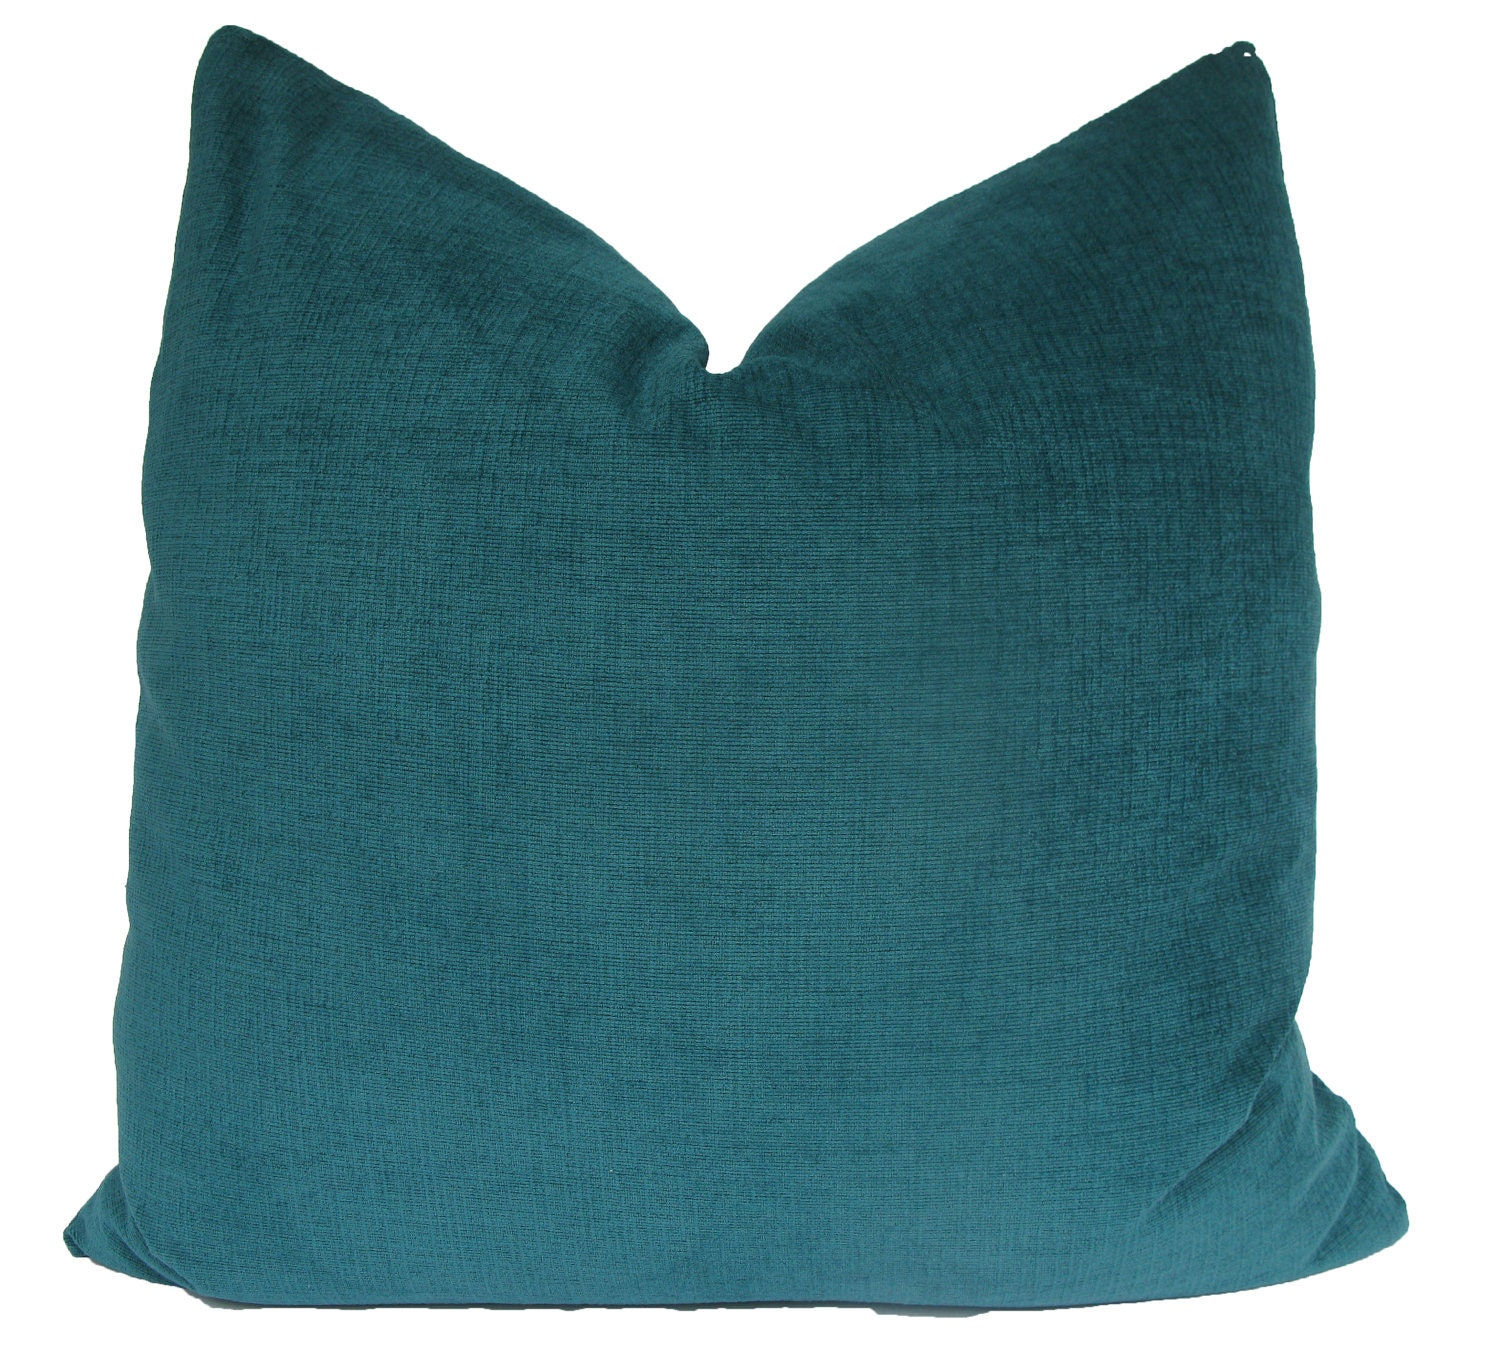 Throw Pillow Covers Teal : Decorative Turquoise Teal Plush Pillow Cover by MakingFabulous